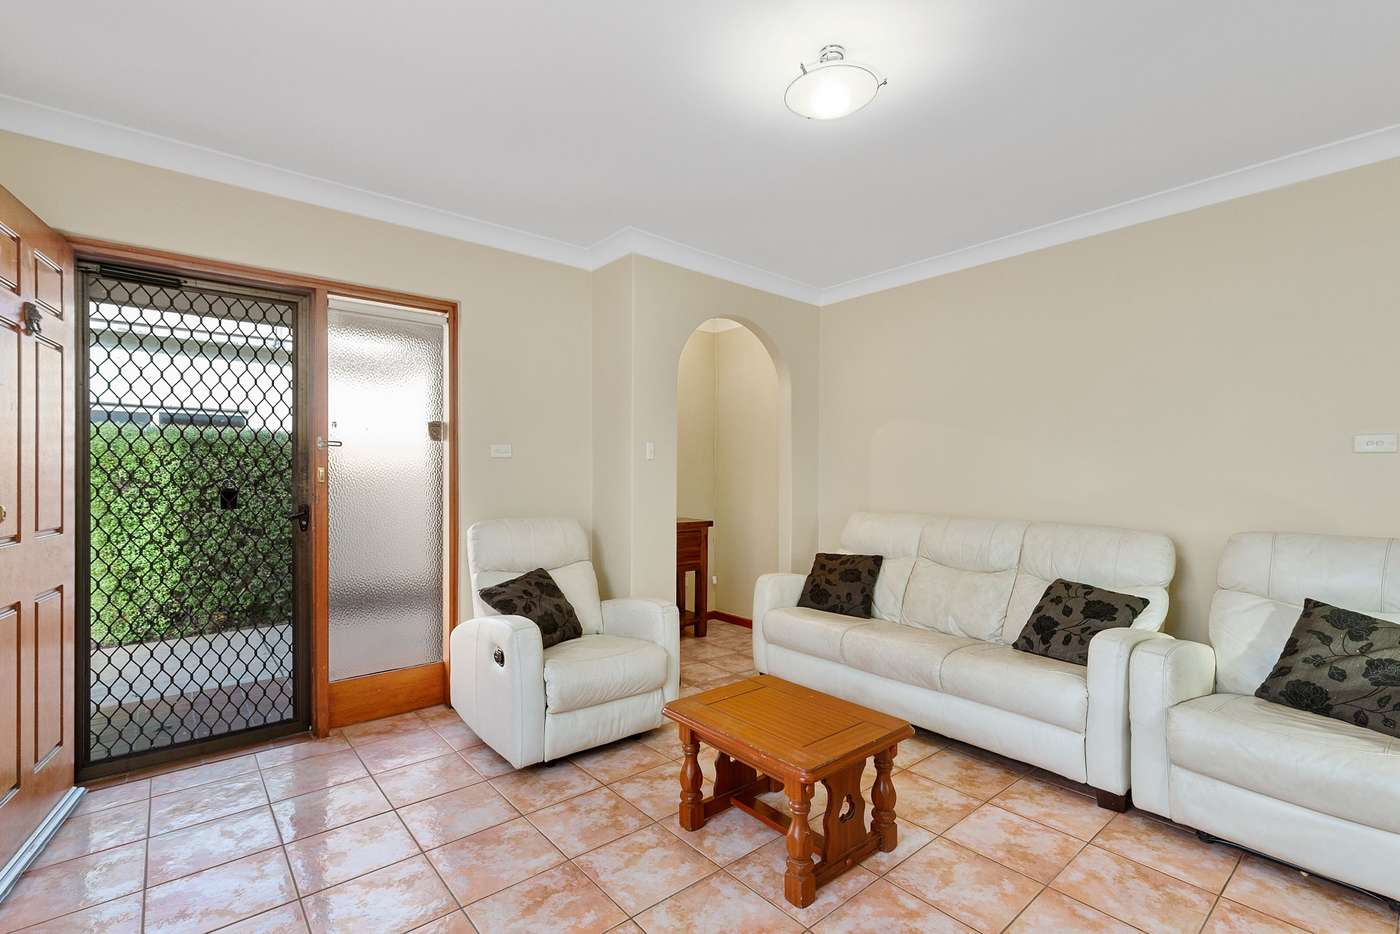 Fifth view of Homely house listing, 1/2 Stuart Road, South Plympton SA 5038